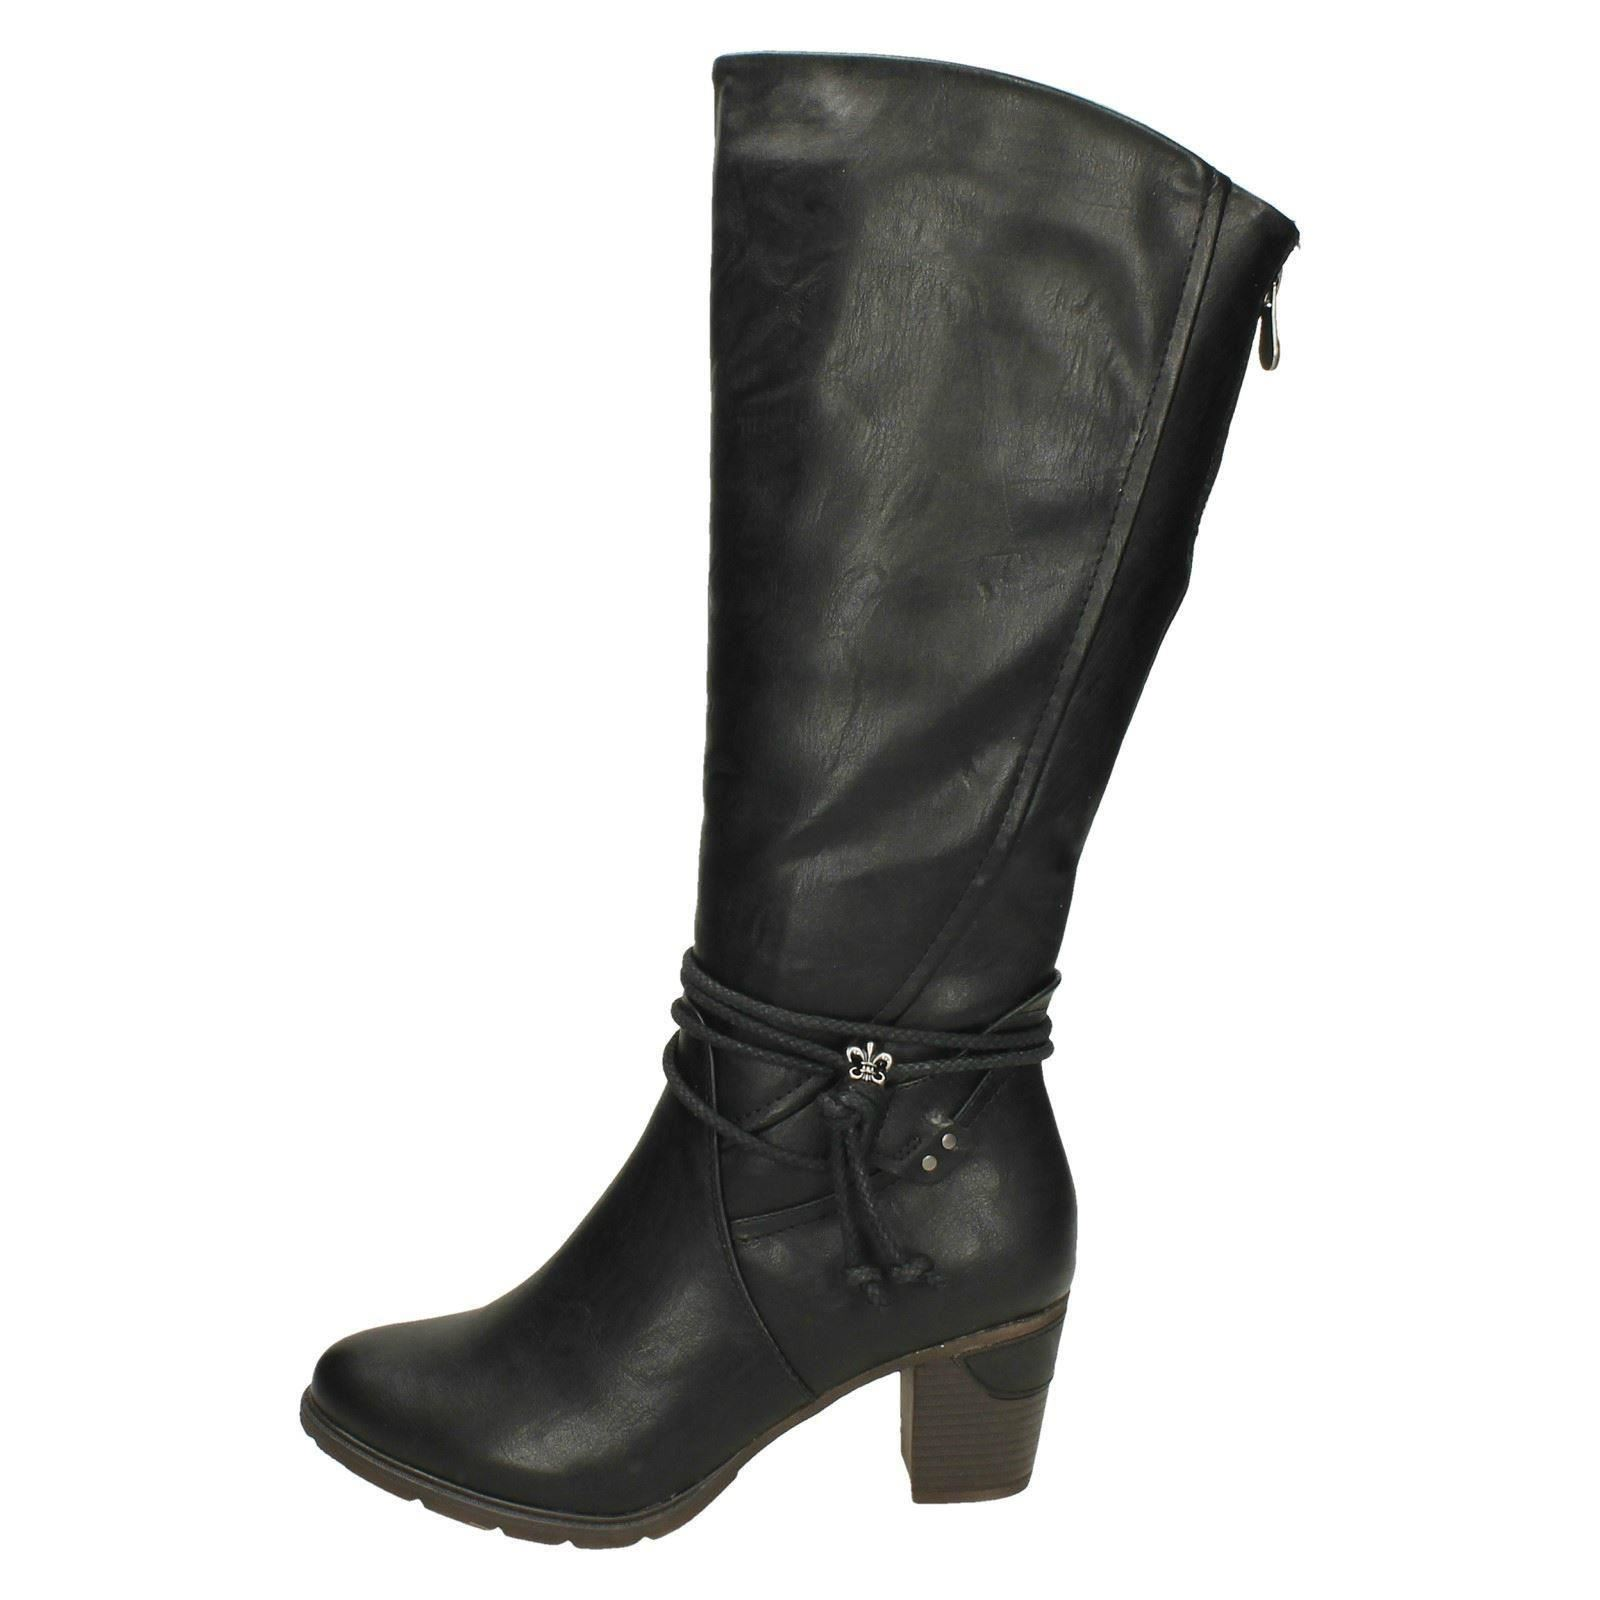 quality elegant and sturdy package fine quality Details about Womens Rieker Knee High Boots 96059